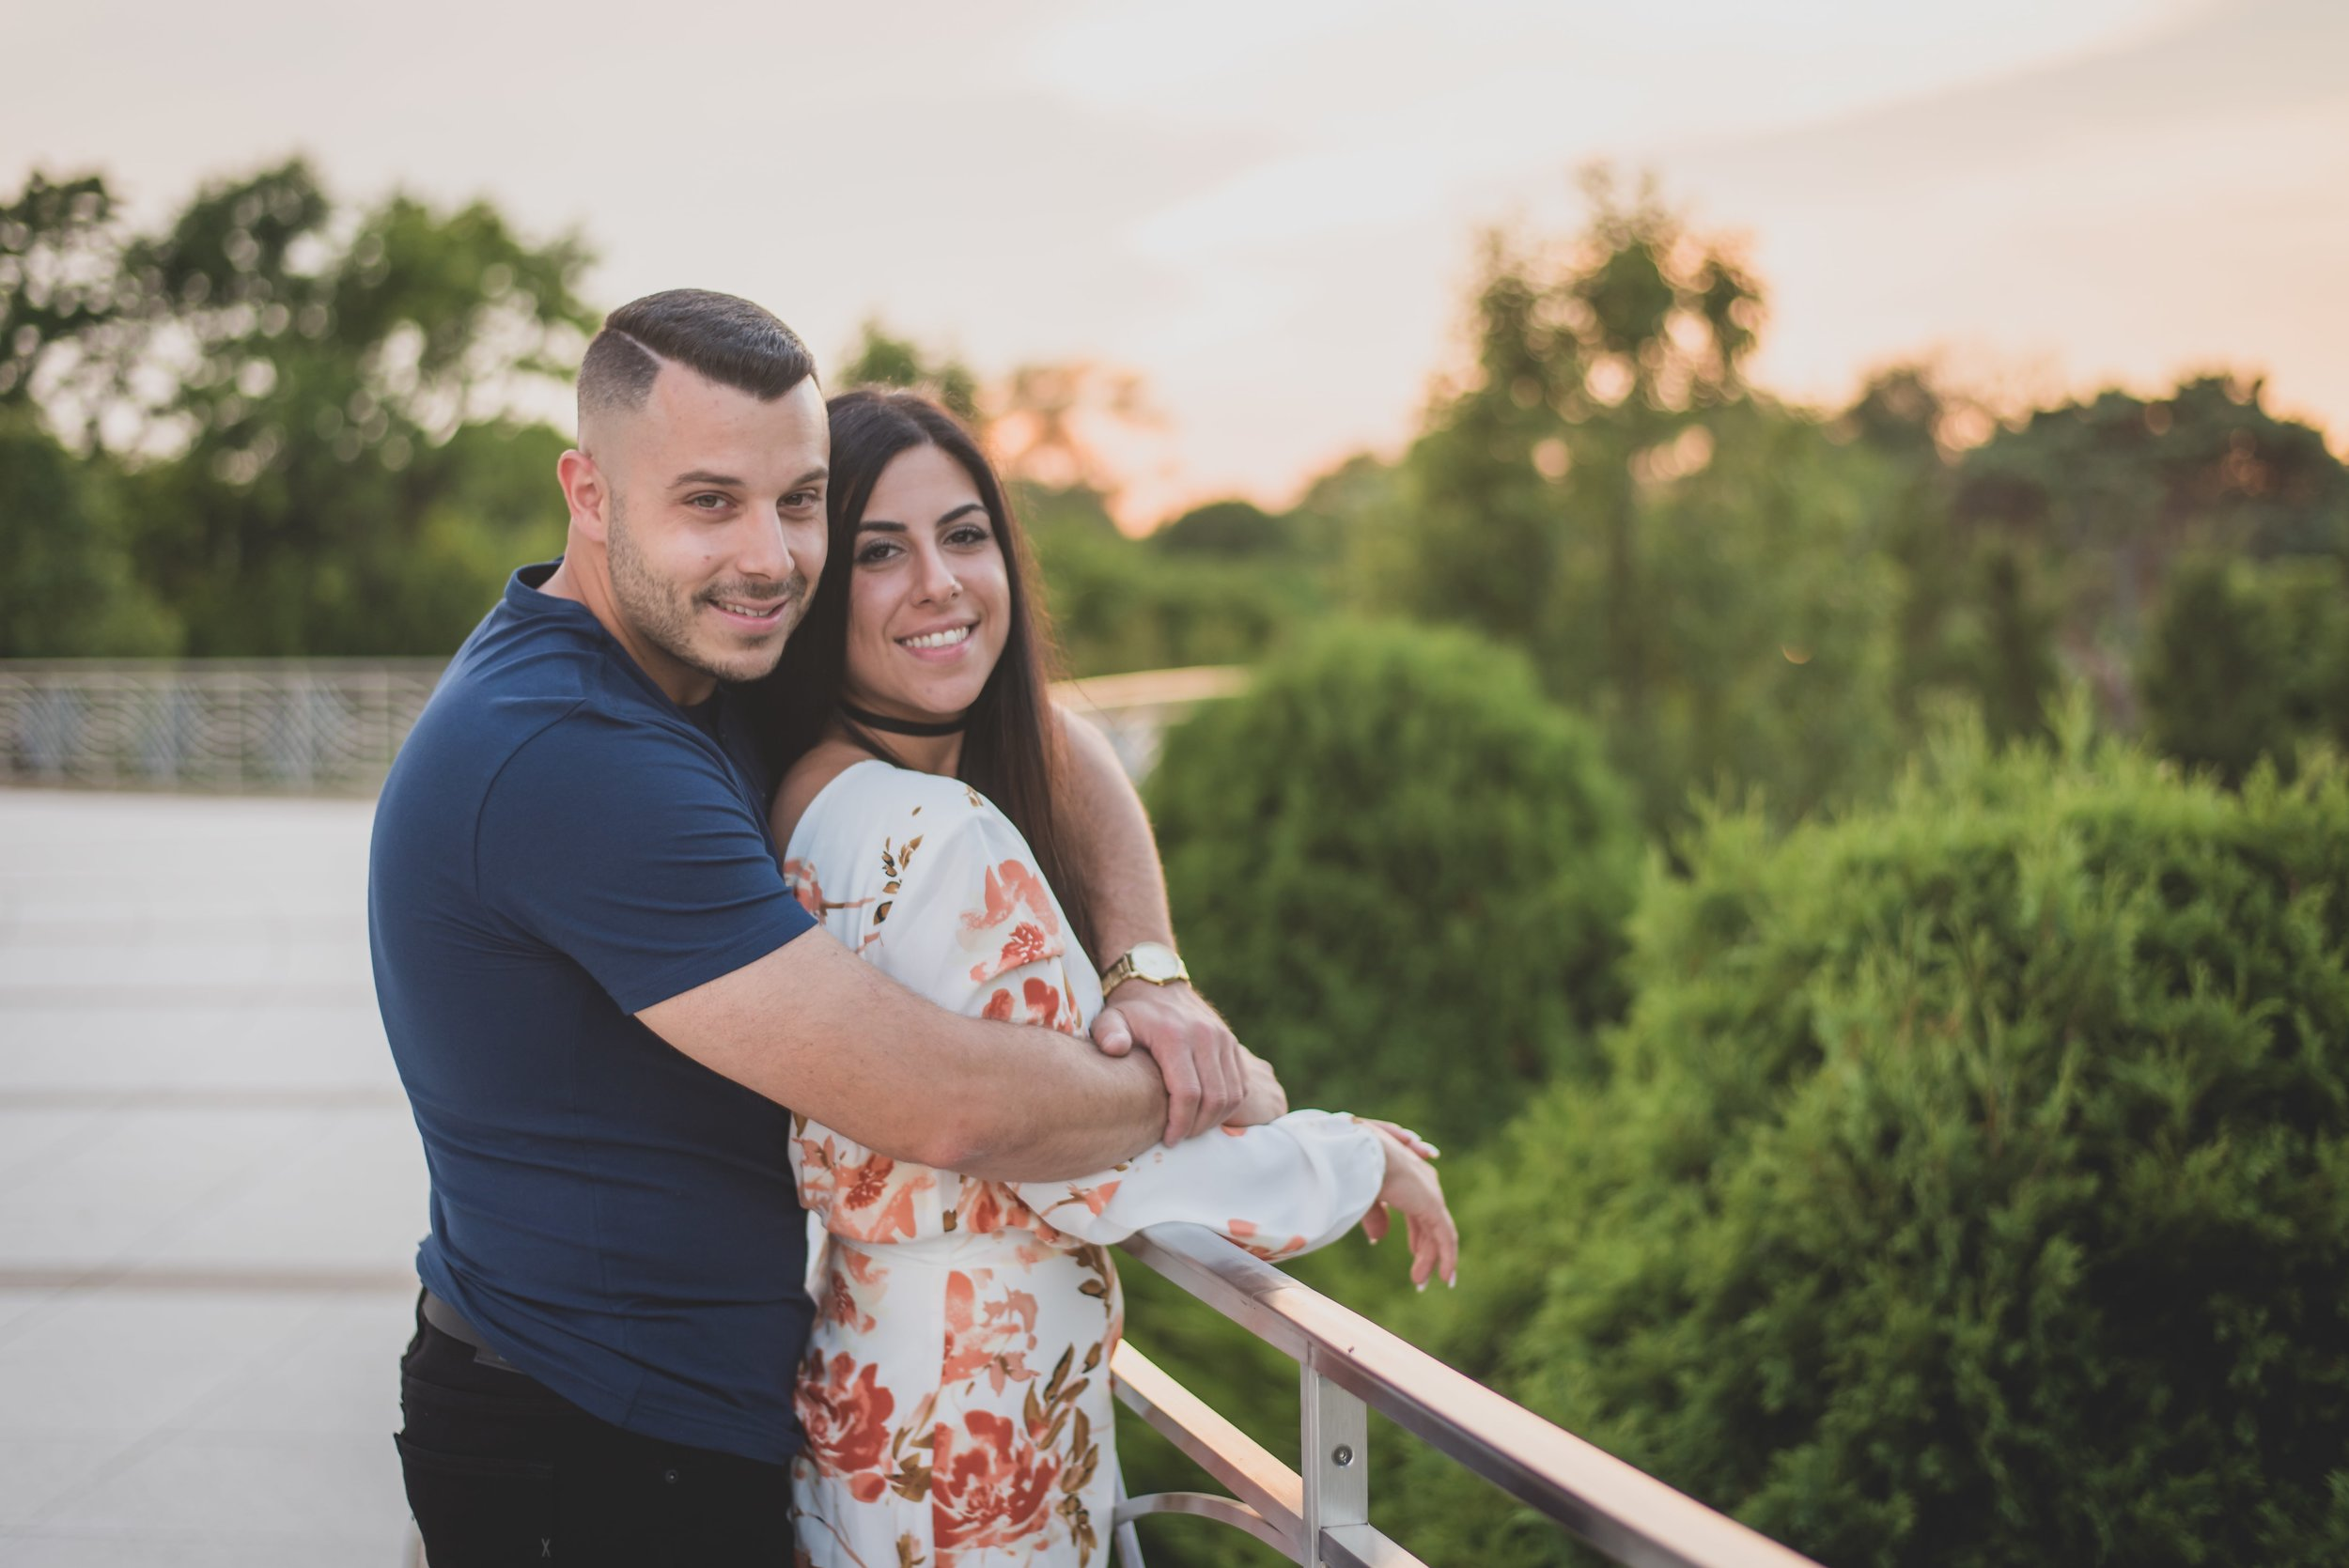 Engaged couple embracing on a rooftop.